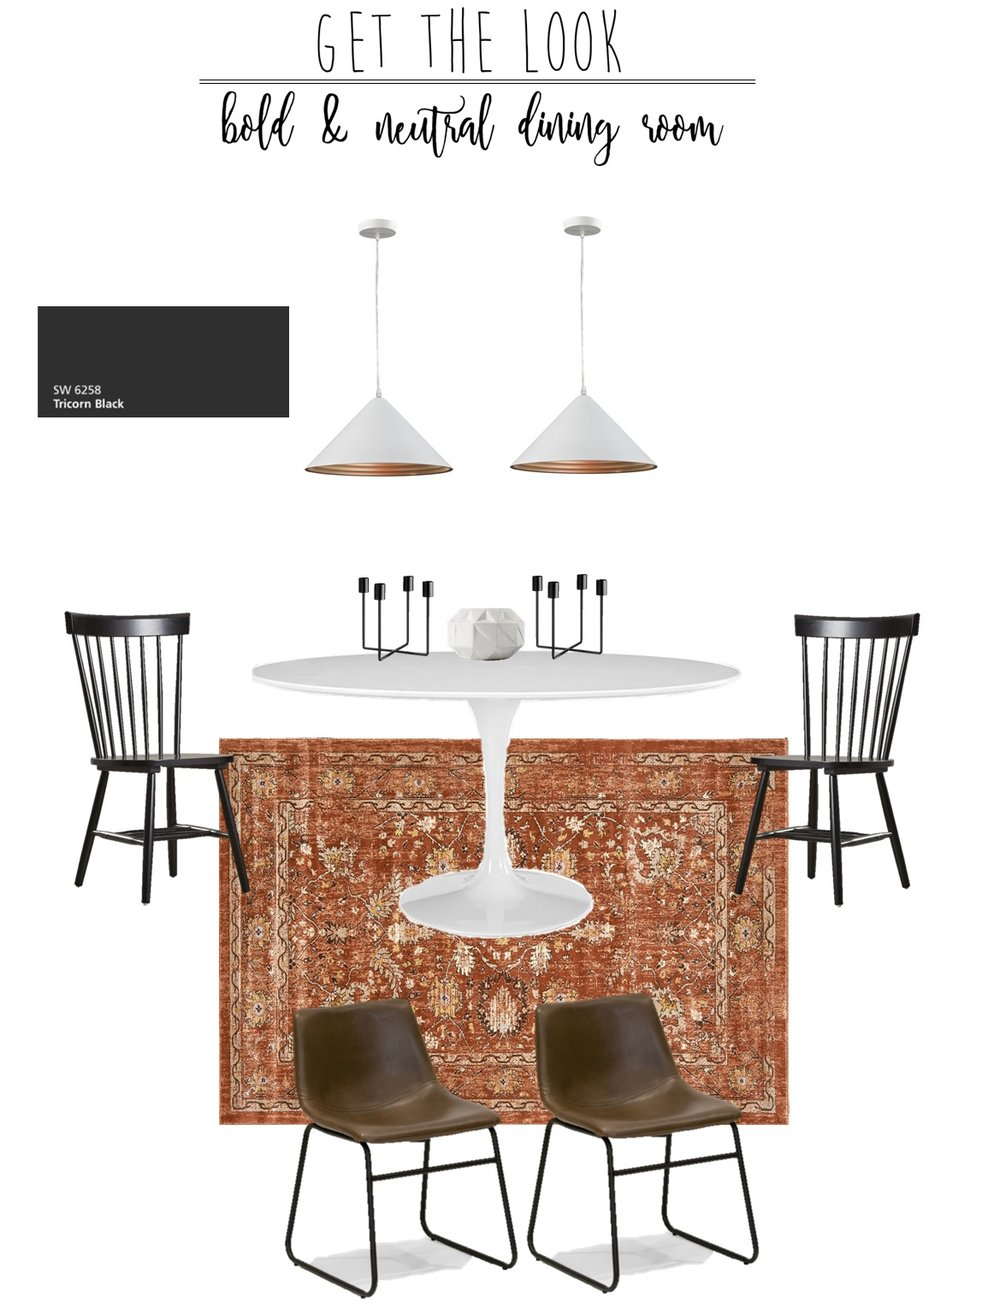 Area Rug  |  Table  |  Brown Chairs  |  Black Chairs  |  White Pendants  |  Candle Holder  |  Vase